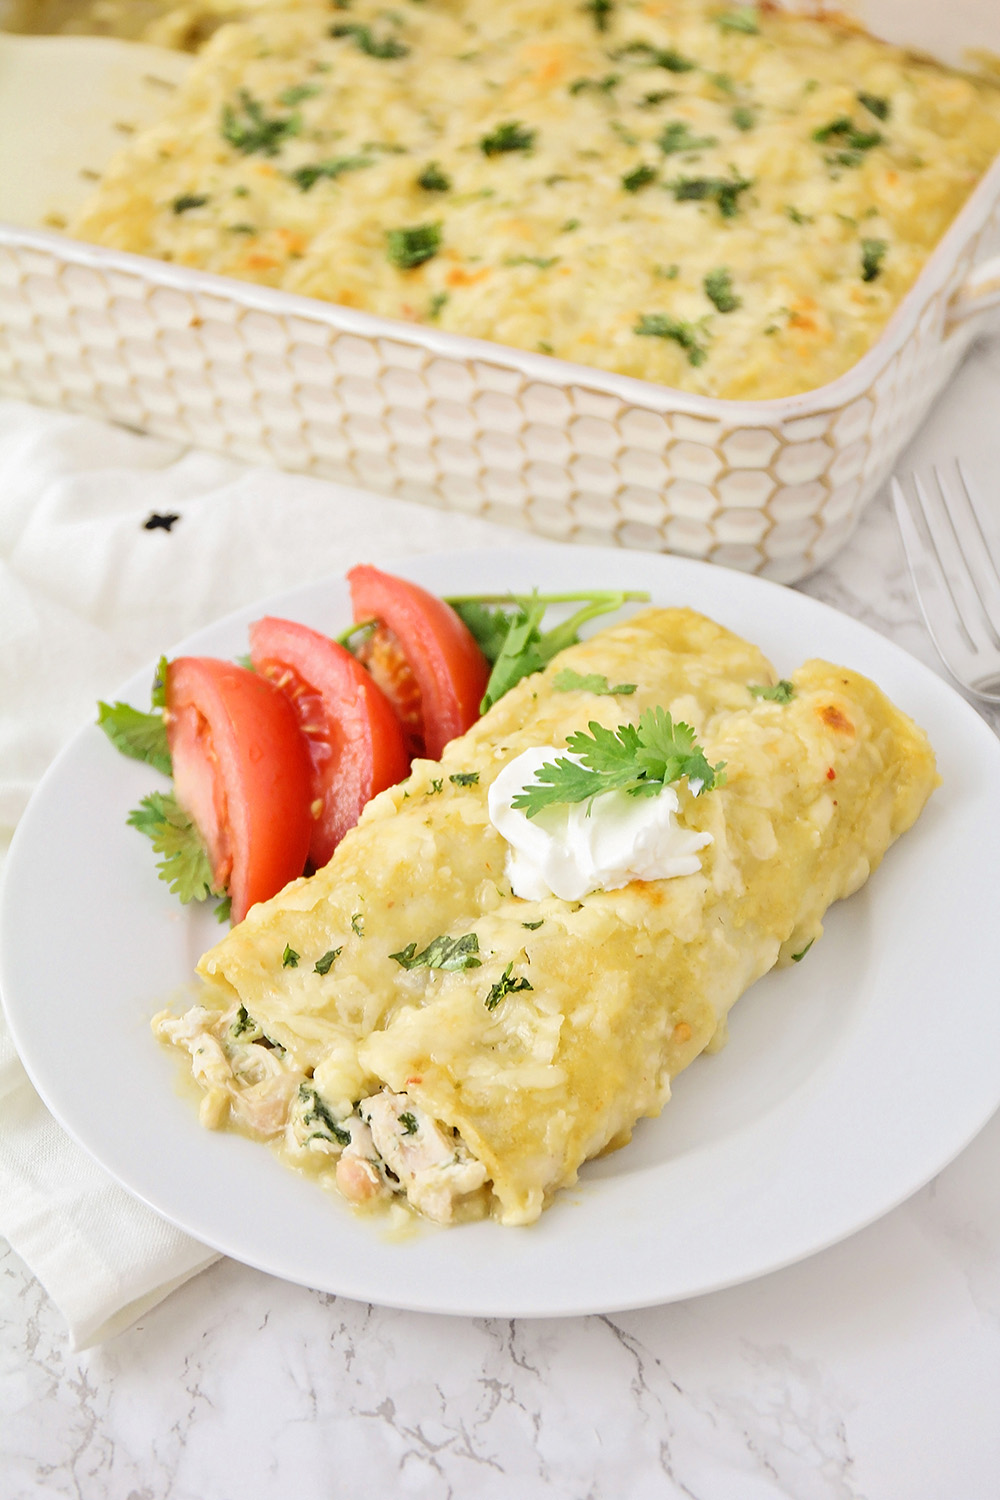 These creamy and savory green chili chicken enchiladas are so delicious, and so easy to make!